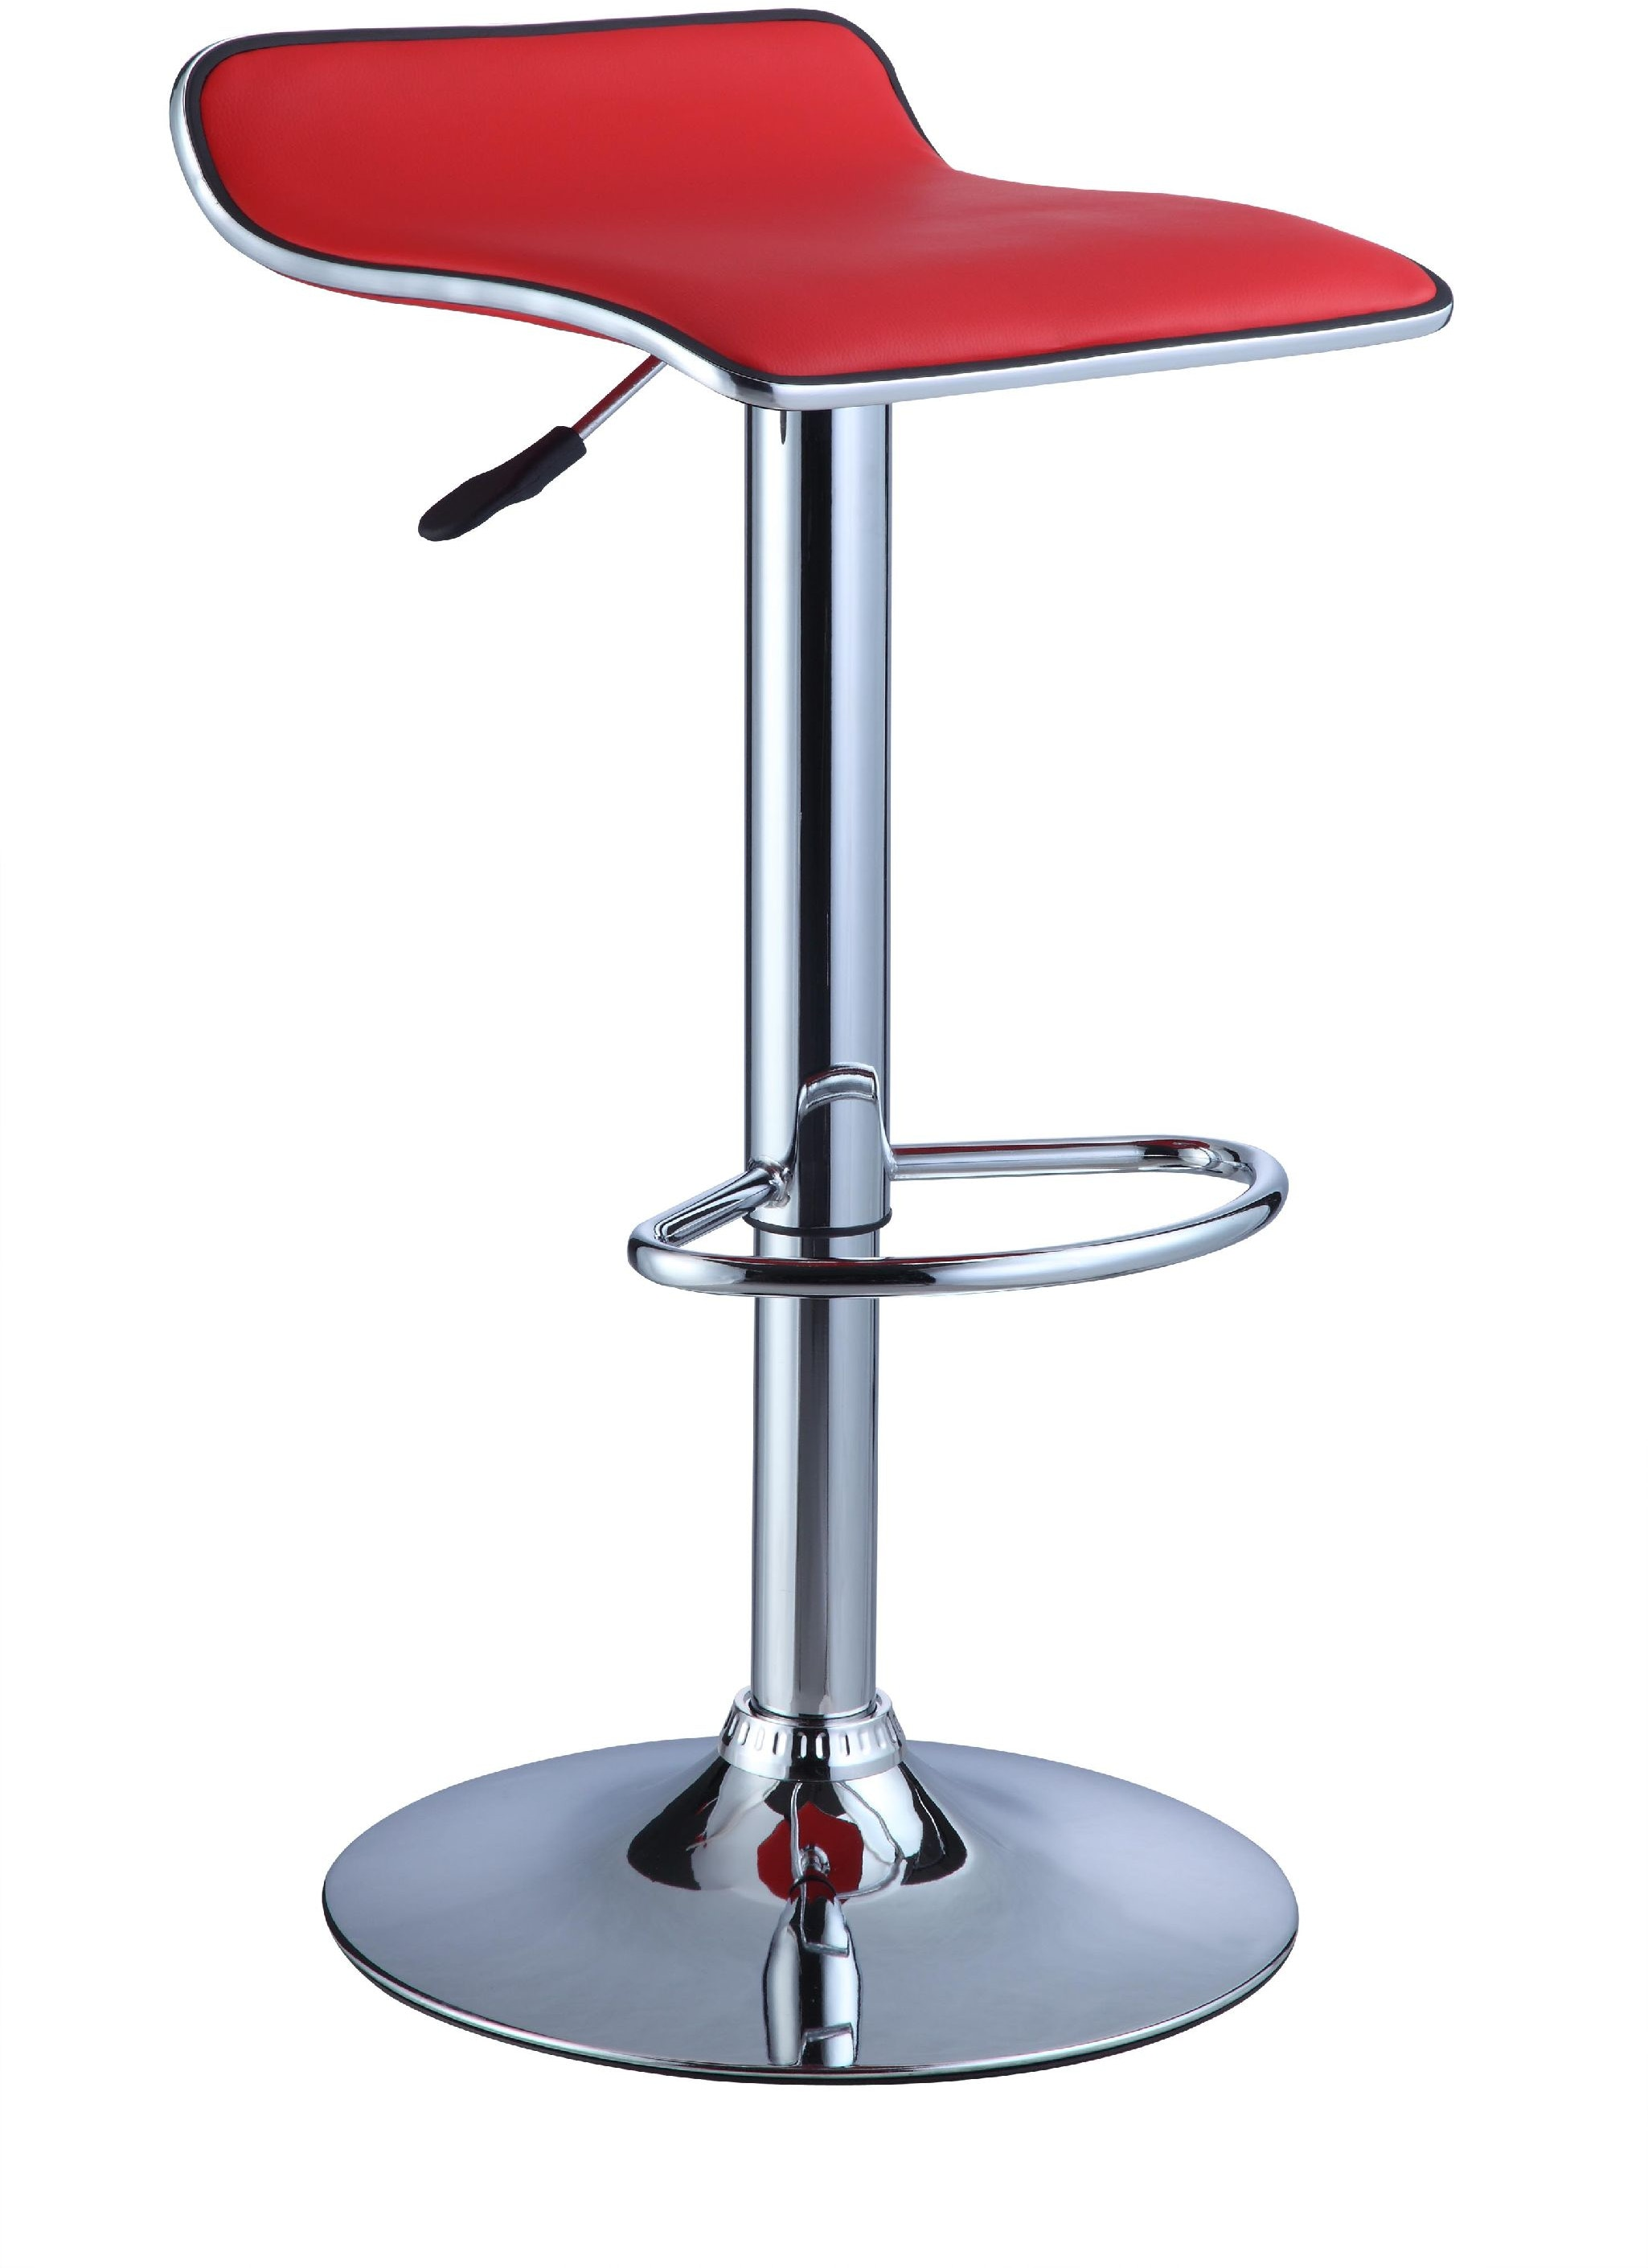 Powell Furniture Bar and Game Room Red Faux LeatherChrome  : 208 847 silo from www.carolhouse.com size 1024 x 768 jpeg 20kB